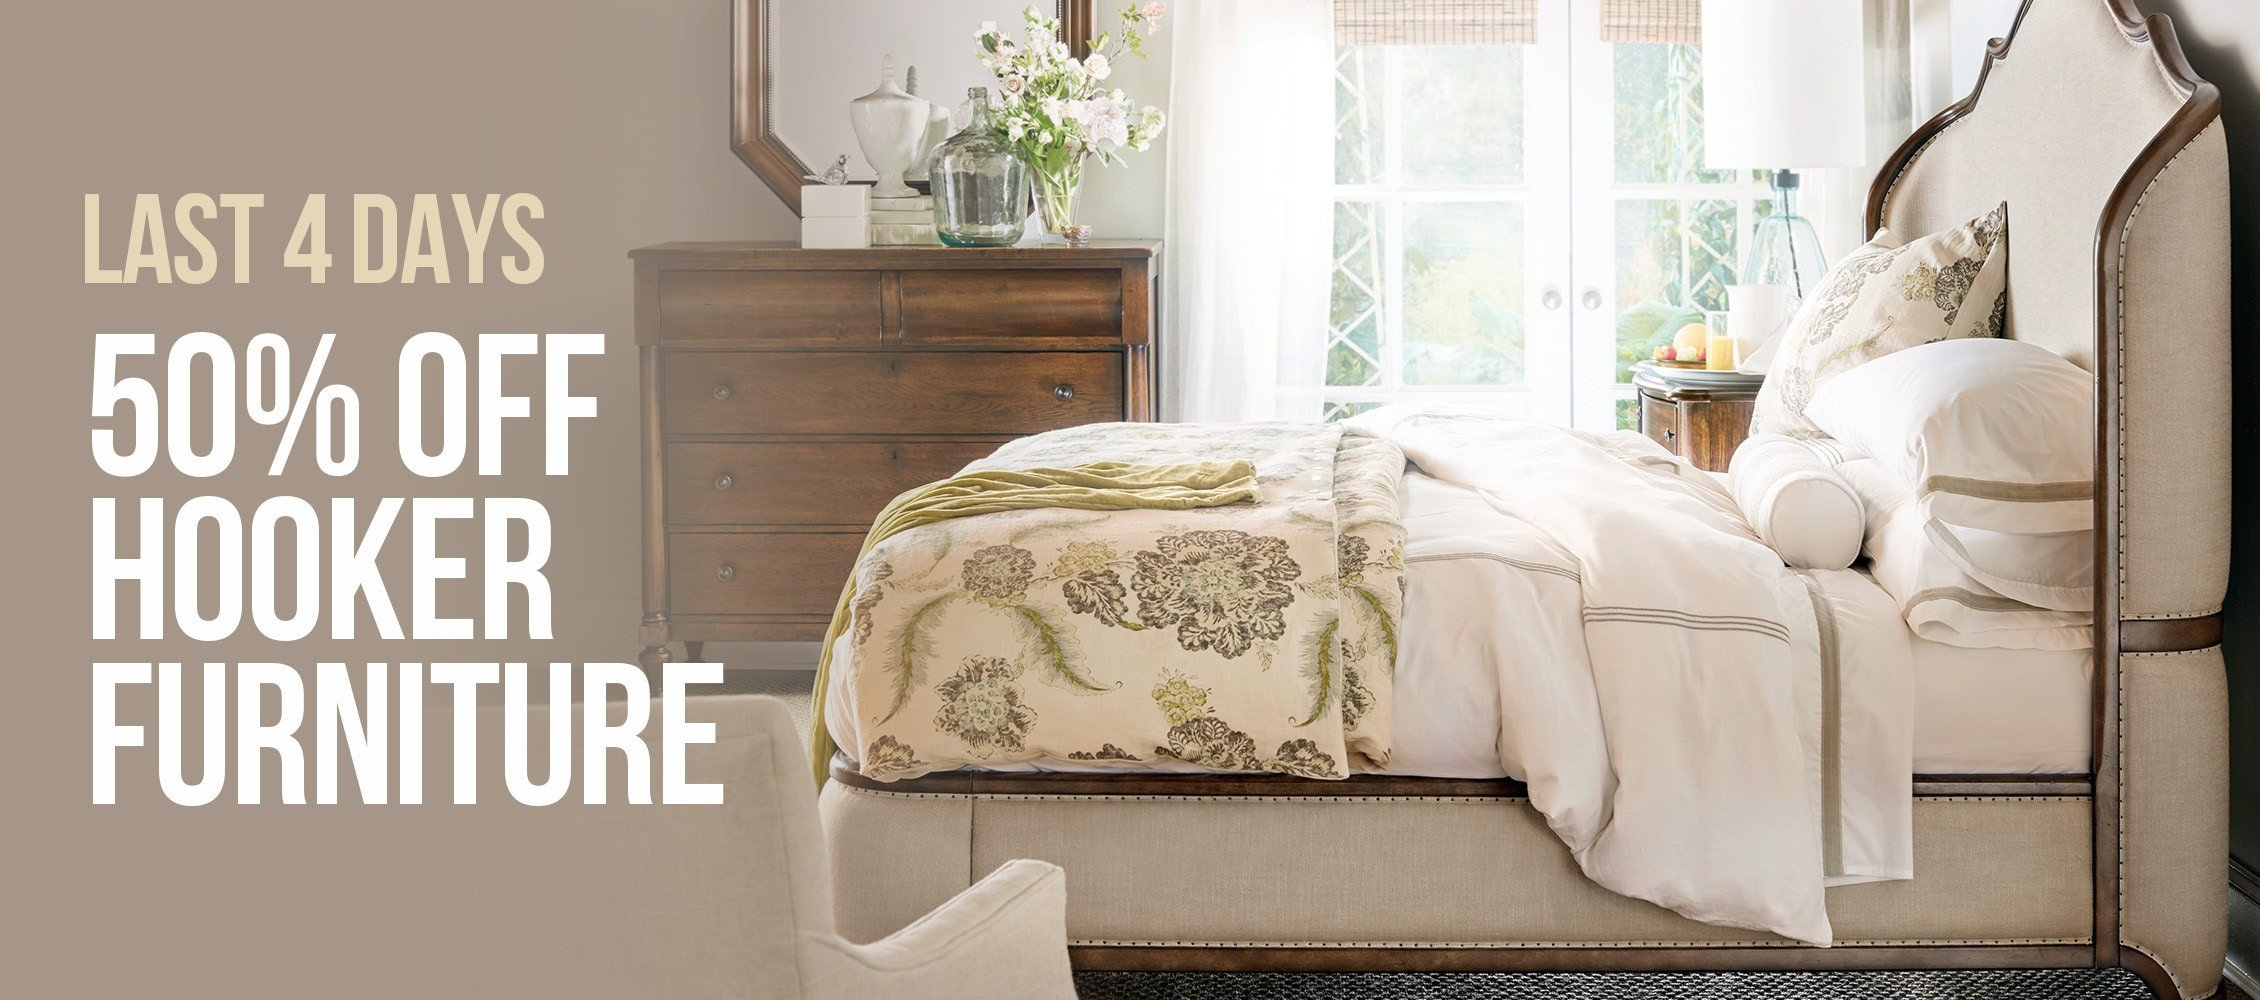 Paula Deen Furniture Bedroom Luxury Gorman S Home Furnishings & Interior Design Quality